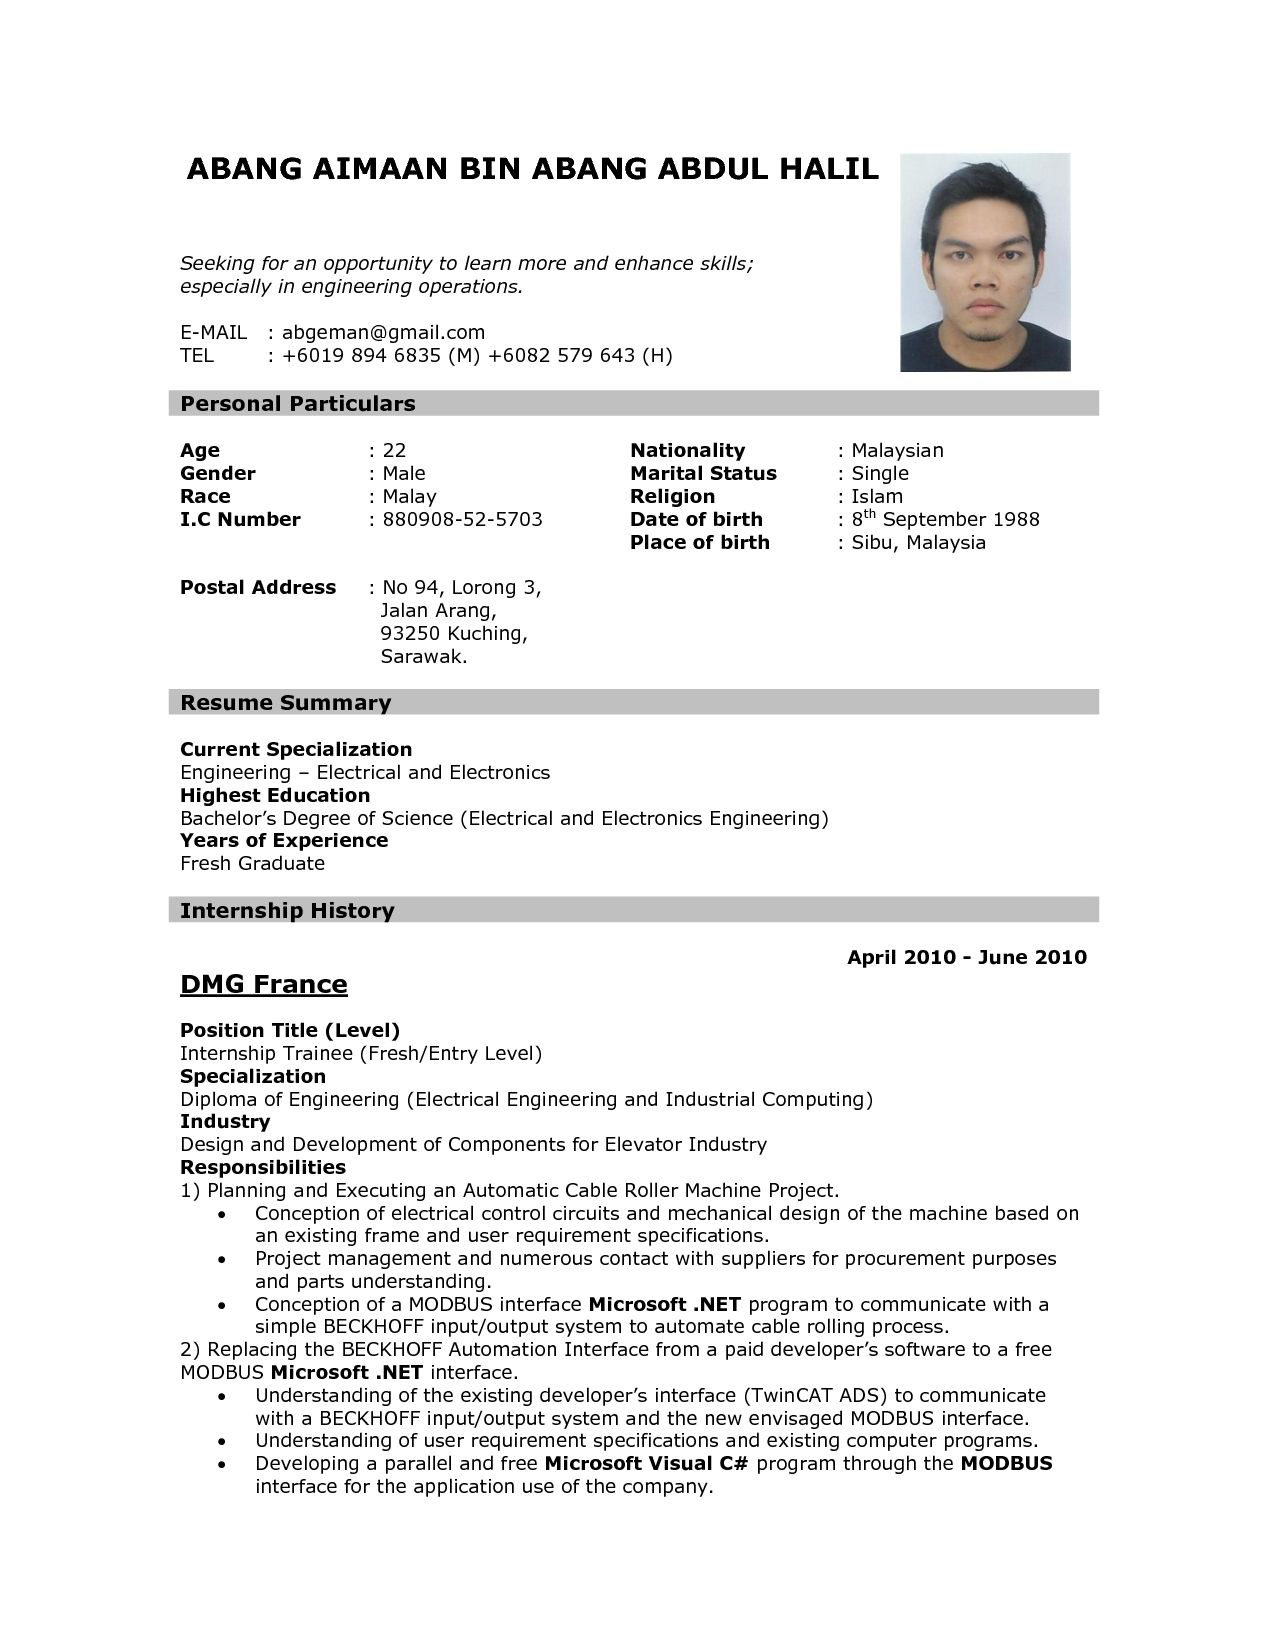 Samples Of Resume For Job Format Of Resume For Job Application To Download Data Sample Resume 2